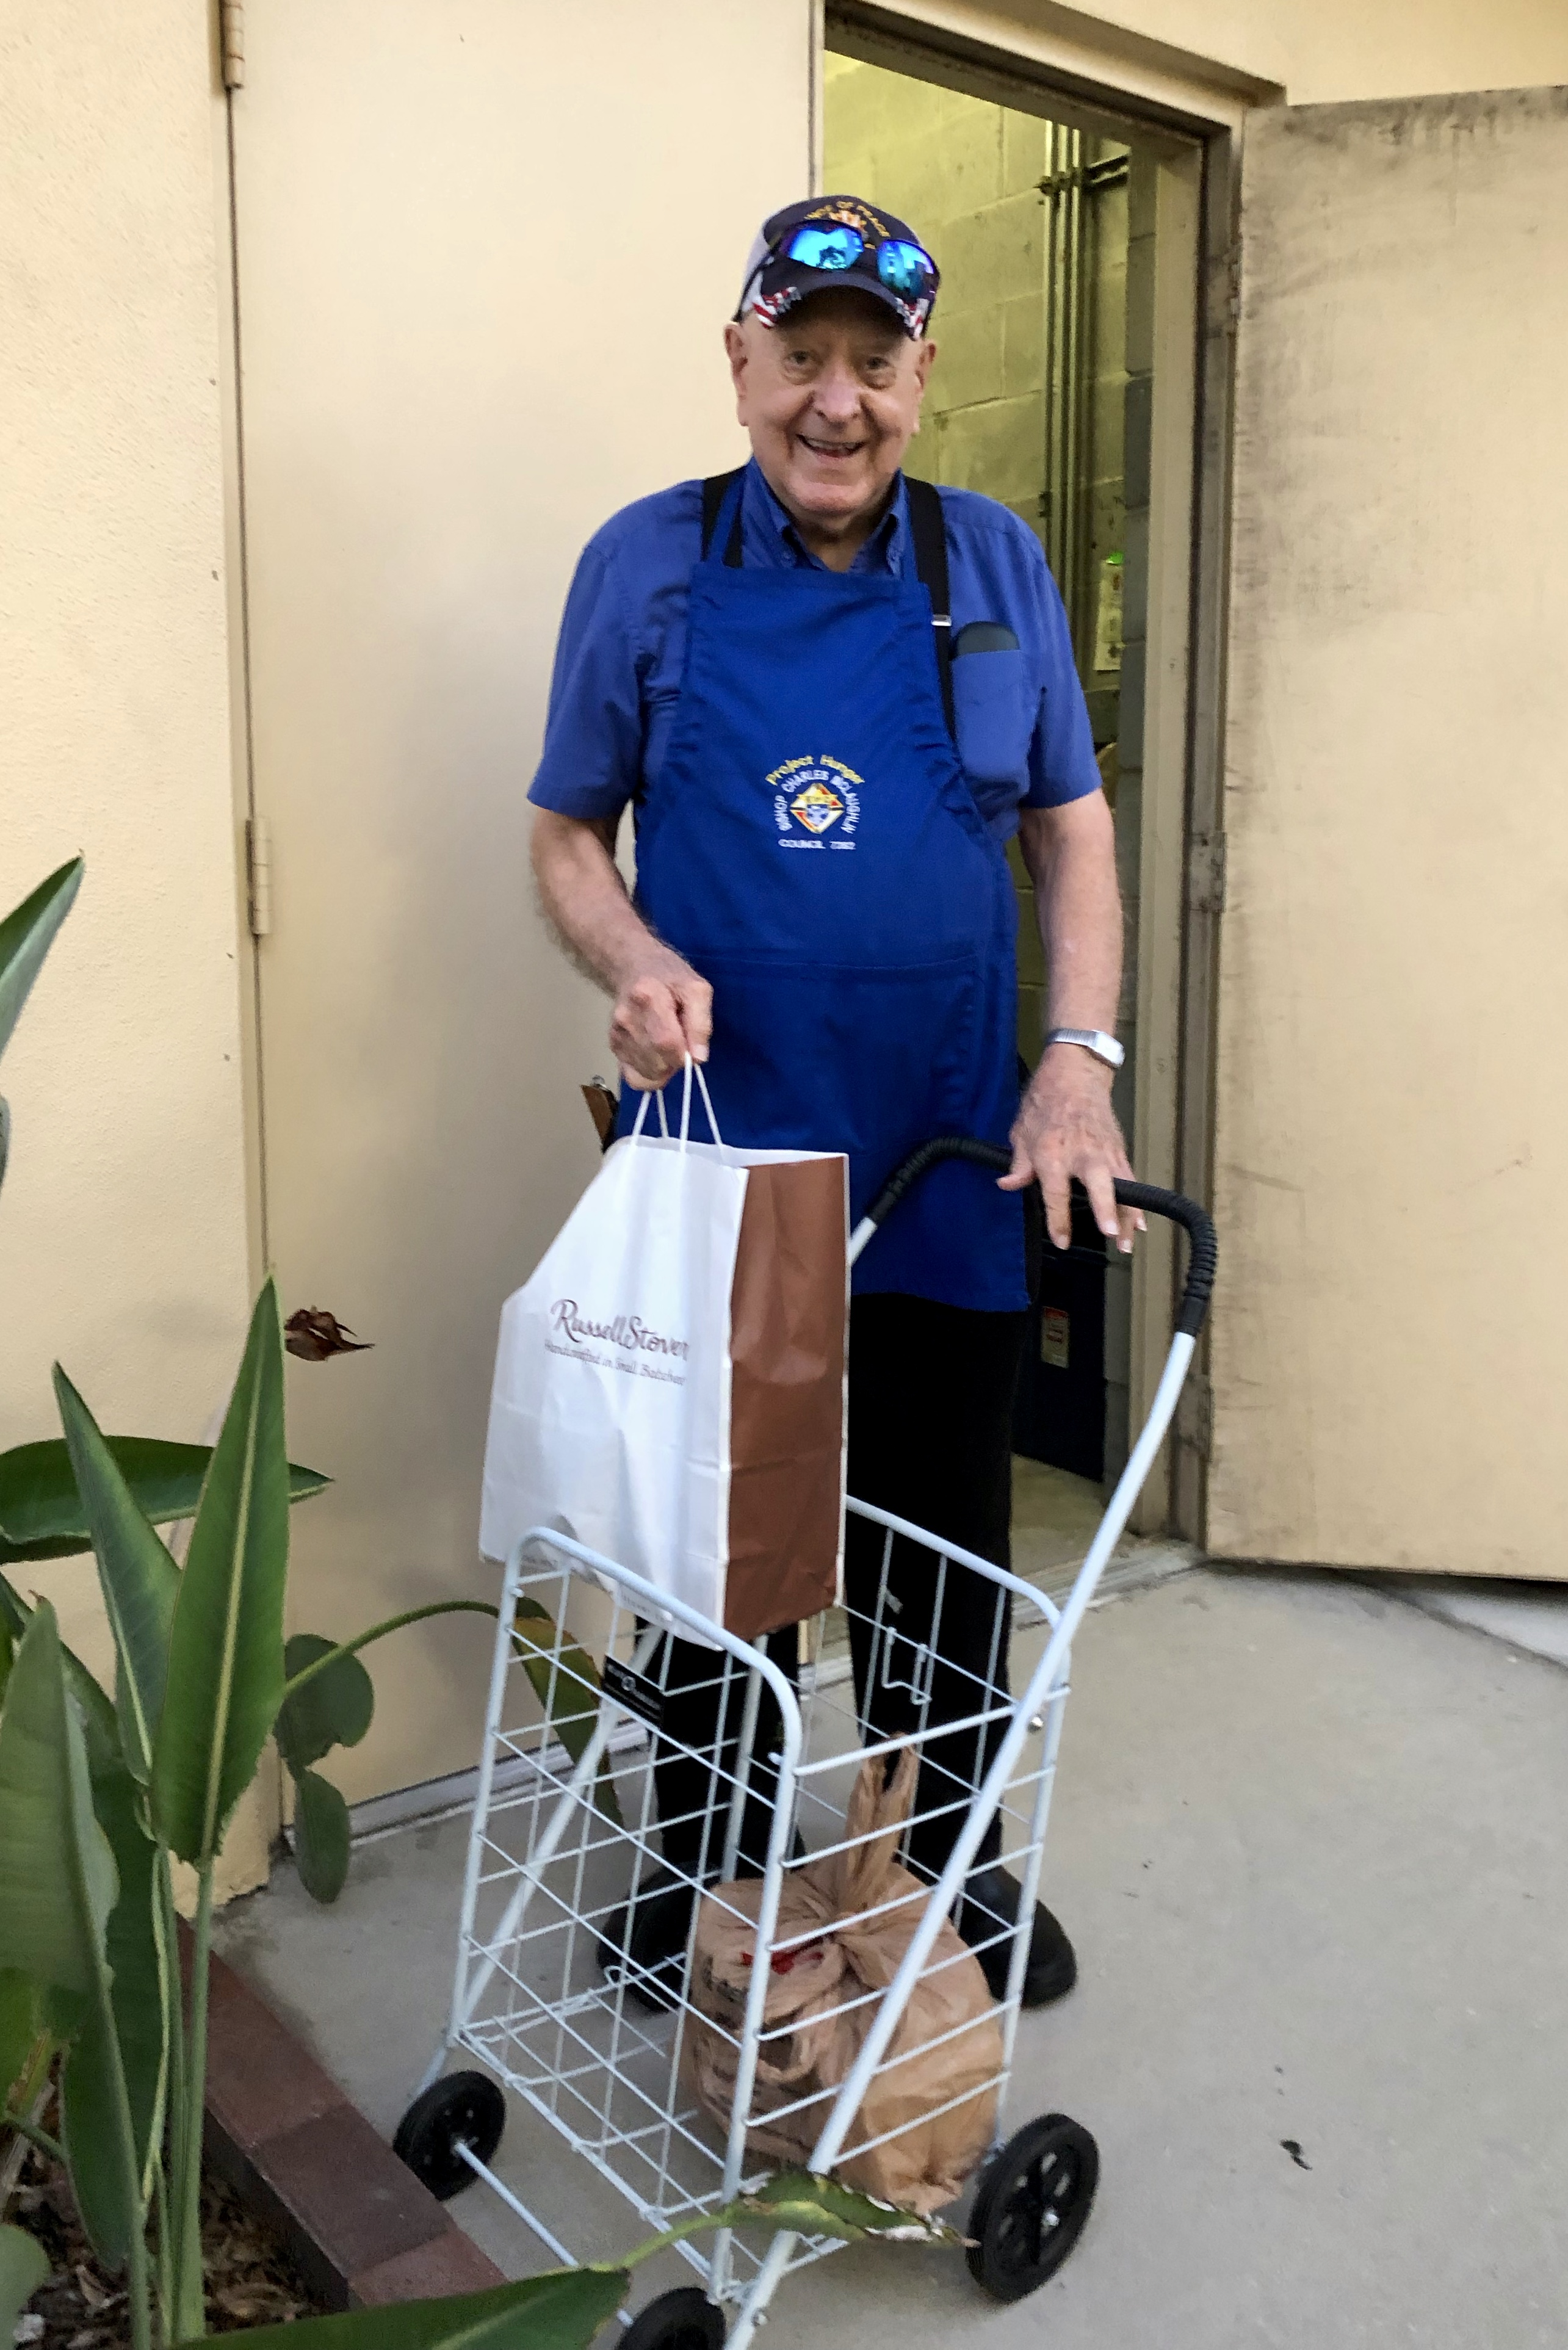 Man in blue shirt lugging a cart full of food donations